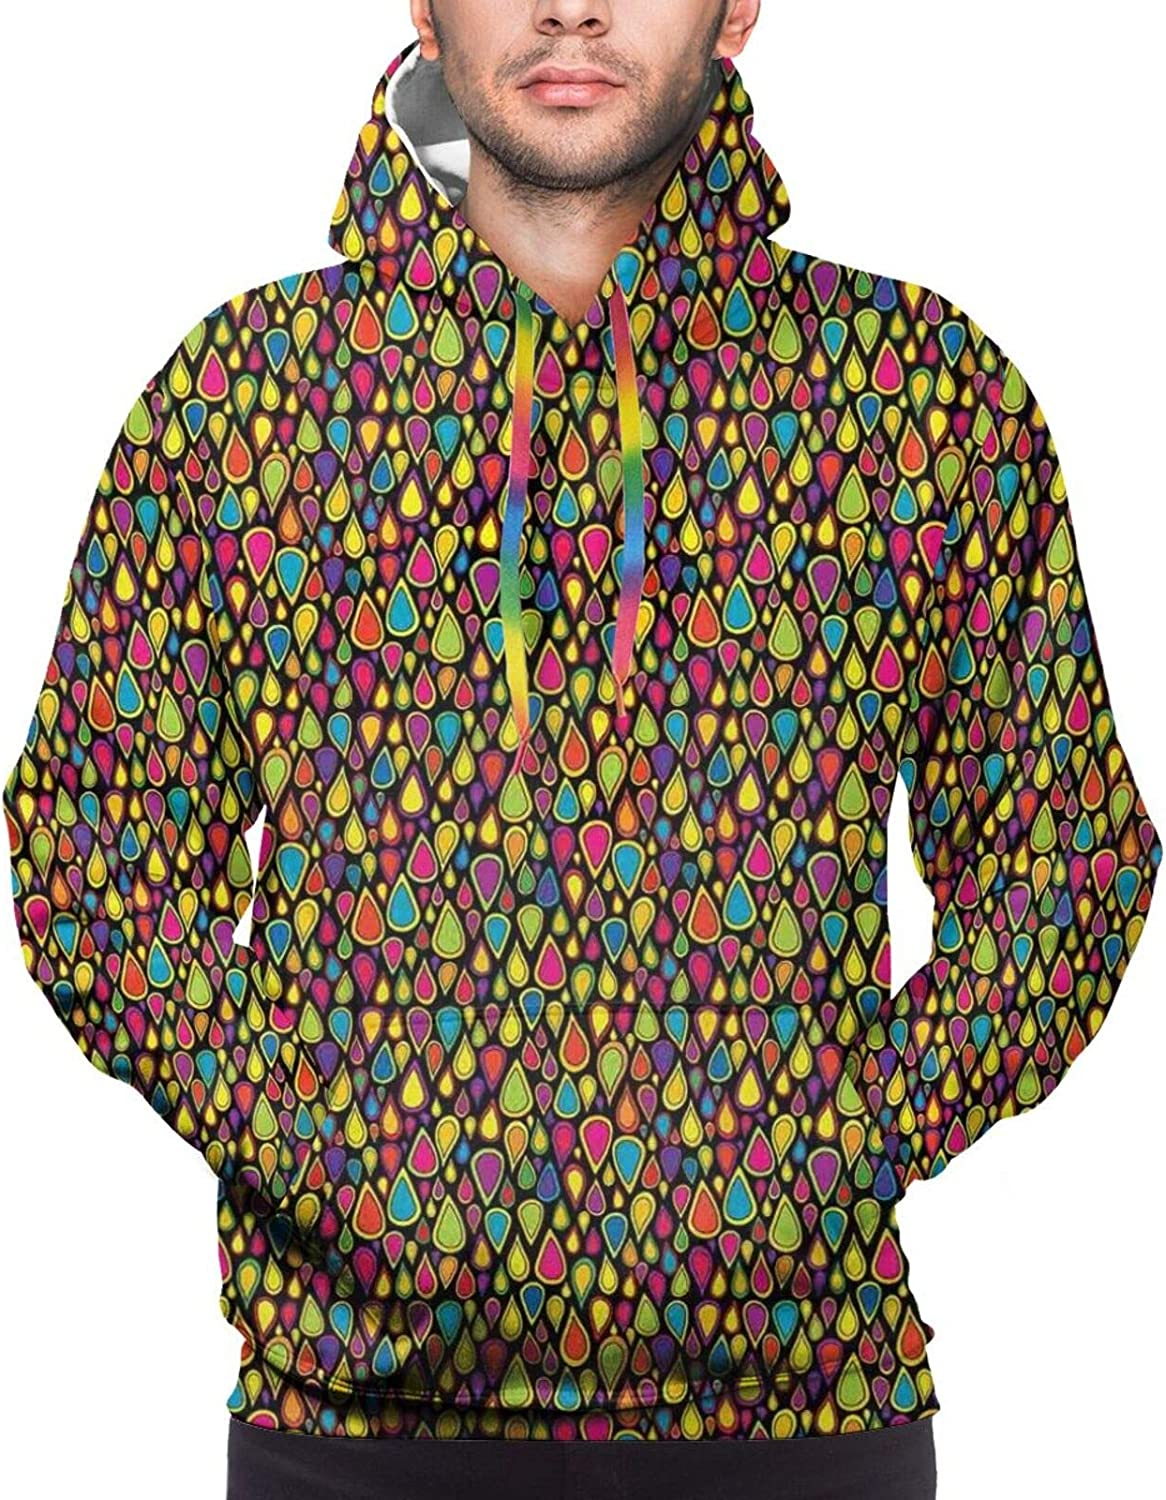 Men's Hoodies Sweatshirts,Colorful Tangled Lines Abstract Leaves Design with Size Dots Lively Colors